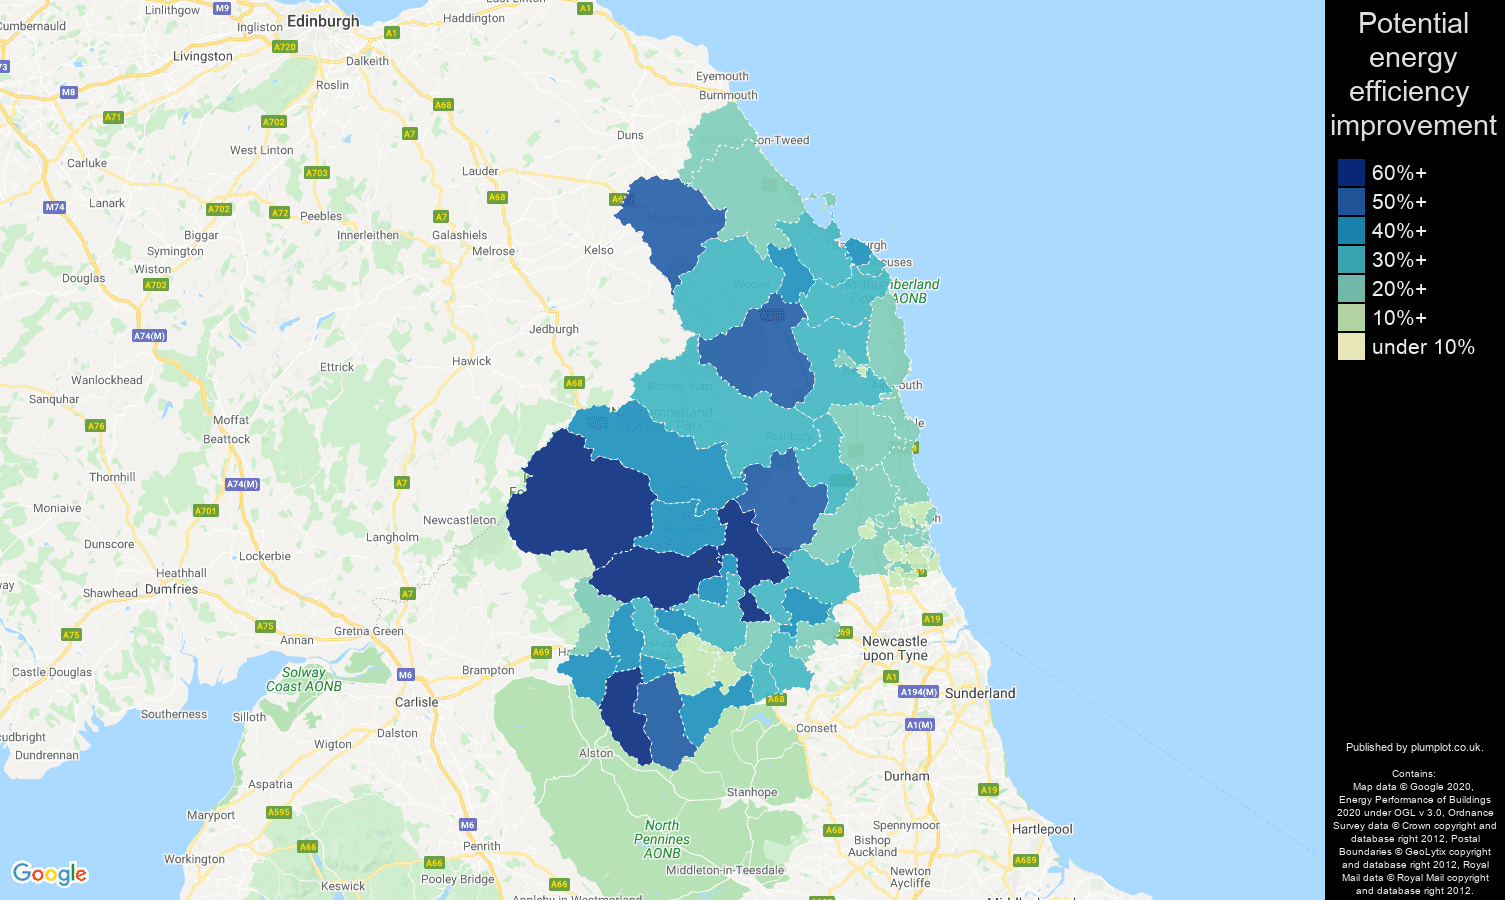 Northumberland map of potential energy efficiency improvement of properties